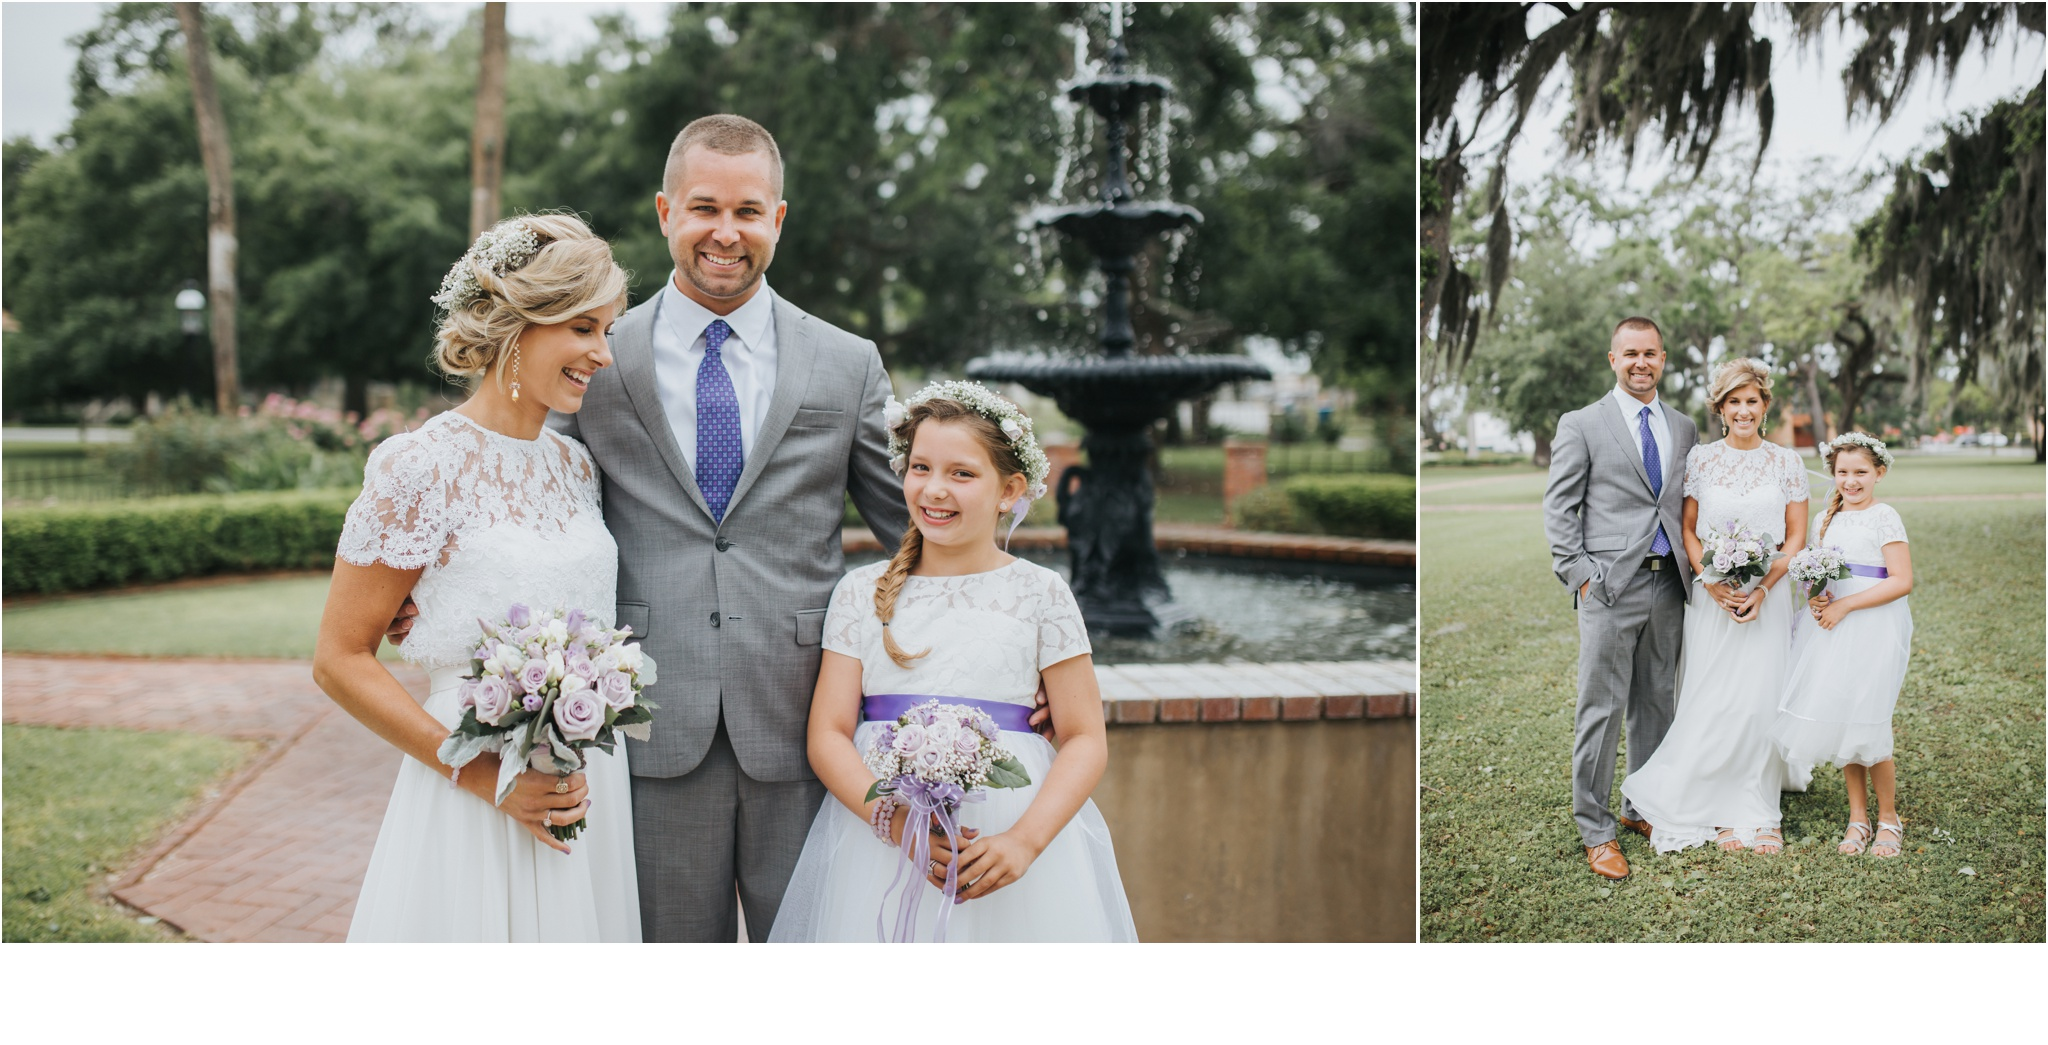 Rainey_Gregg_Photography_St._Simons_Island_Georgia_California_Wedding_Portrait_Photography_1501.jpg